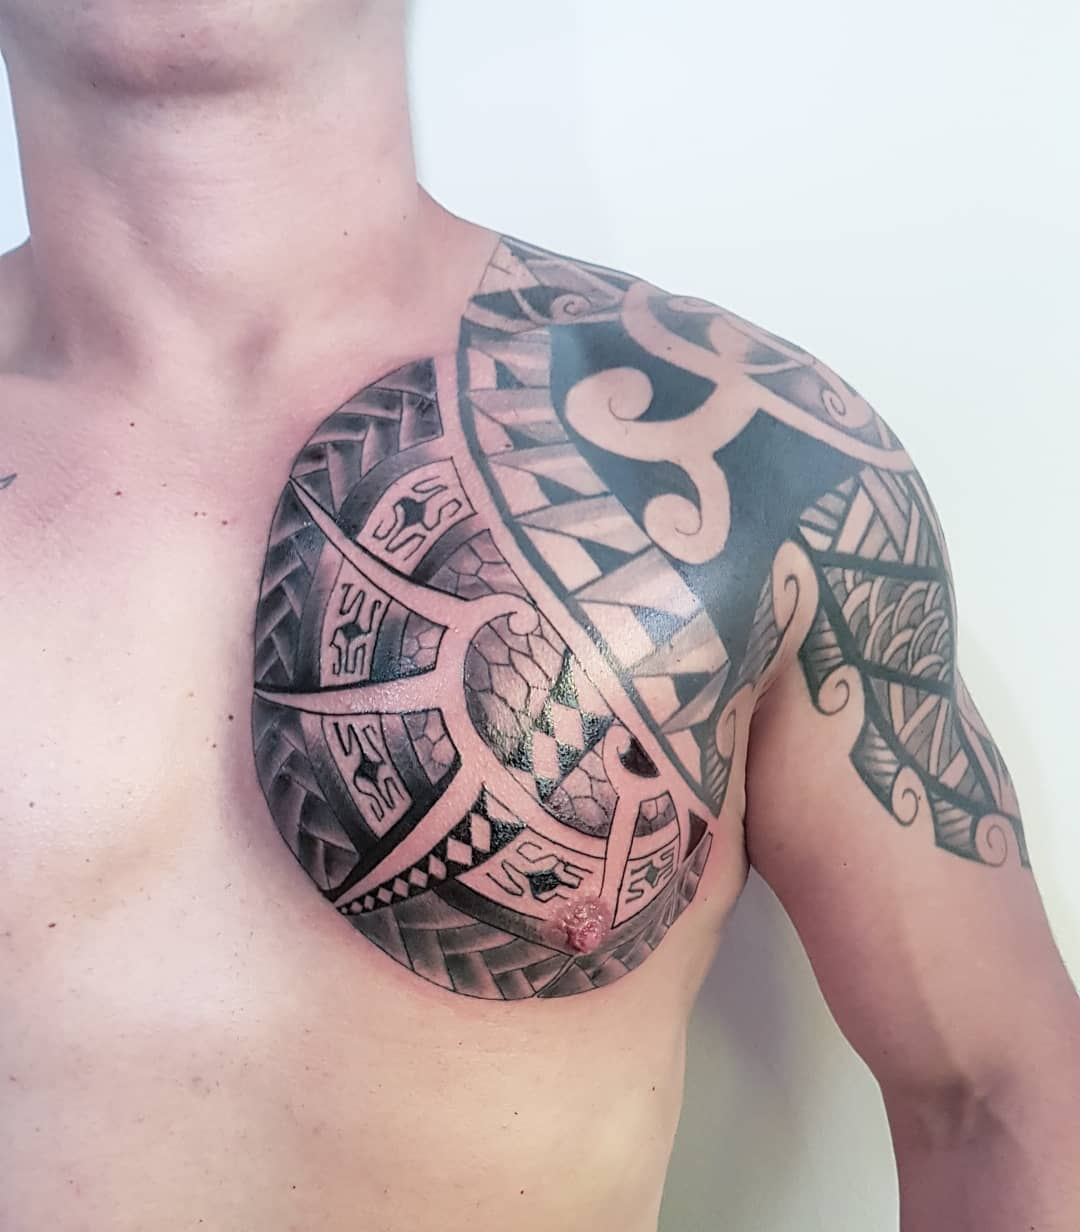 150 Chest Tattoo Themes That Make Men Look Desirable